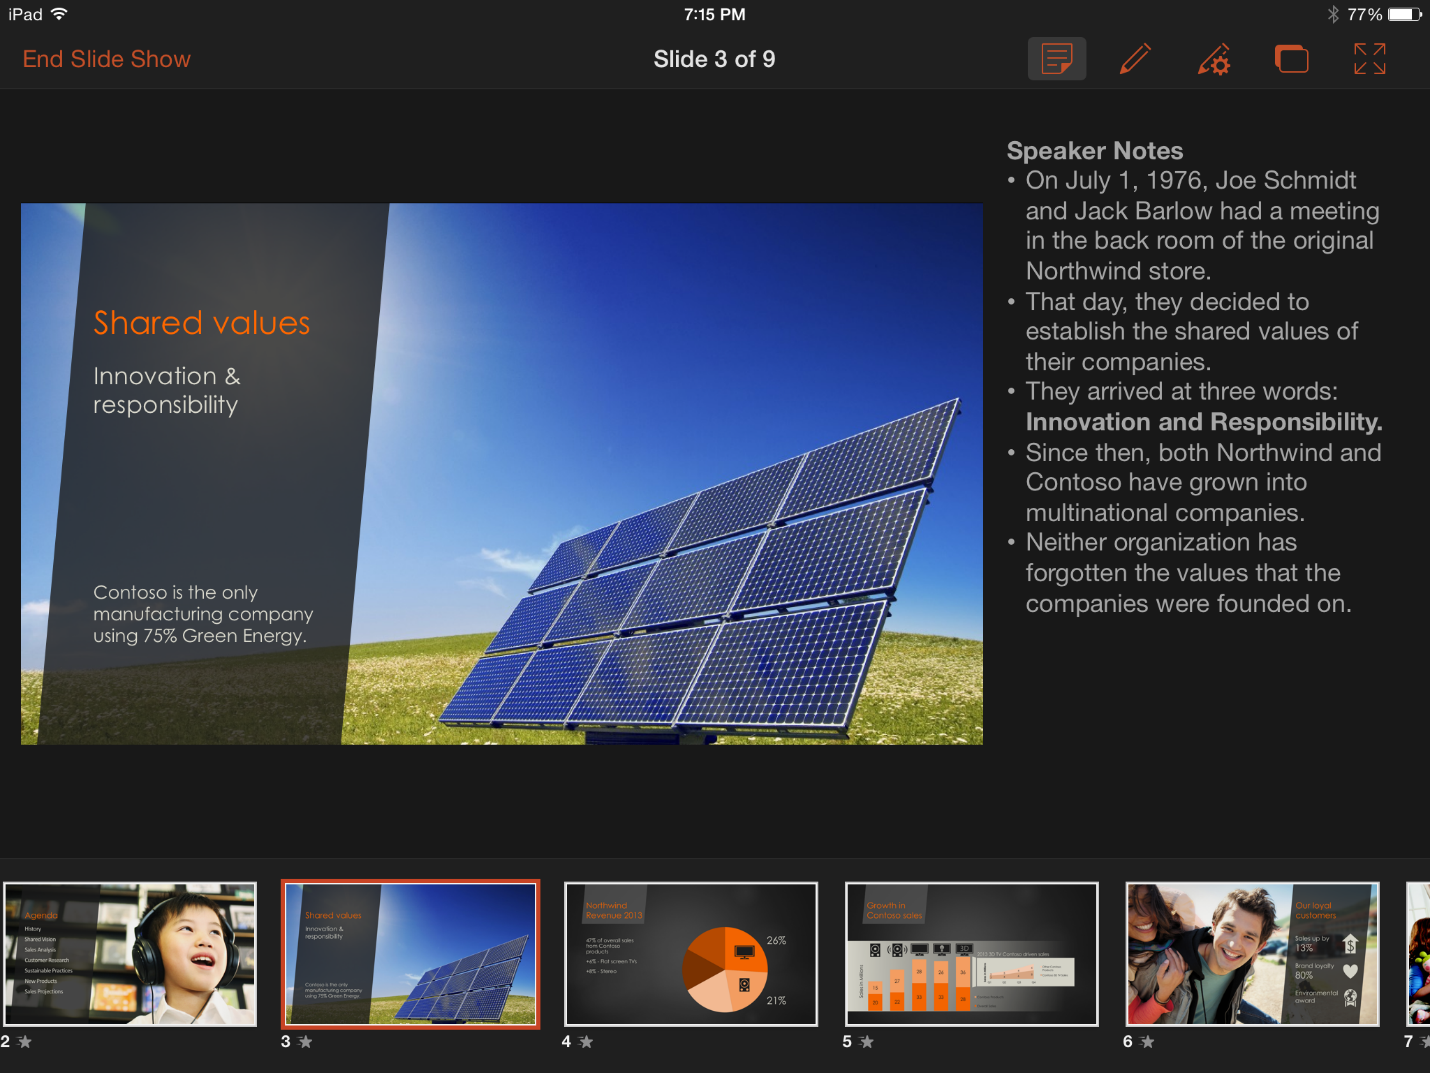 PowerPoint 1.1 for iiPad (Presenter View)